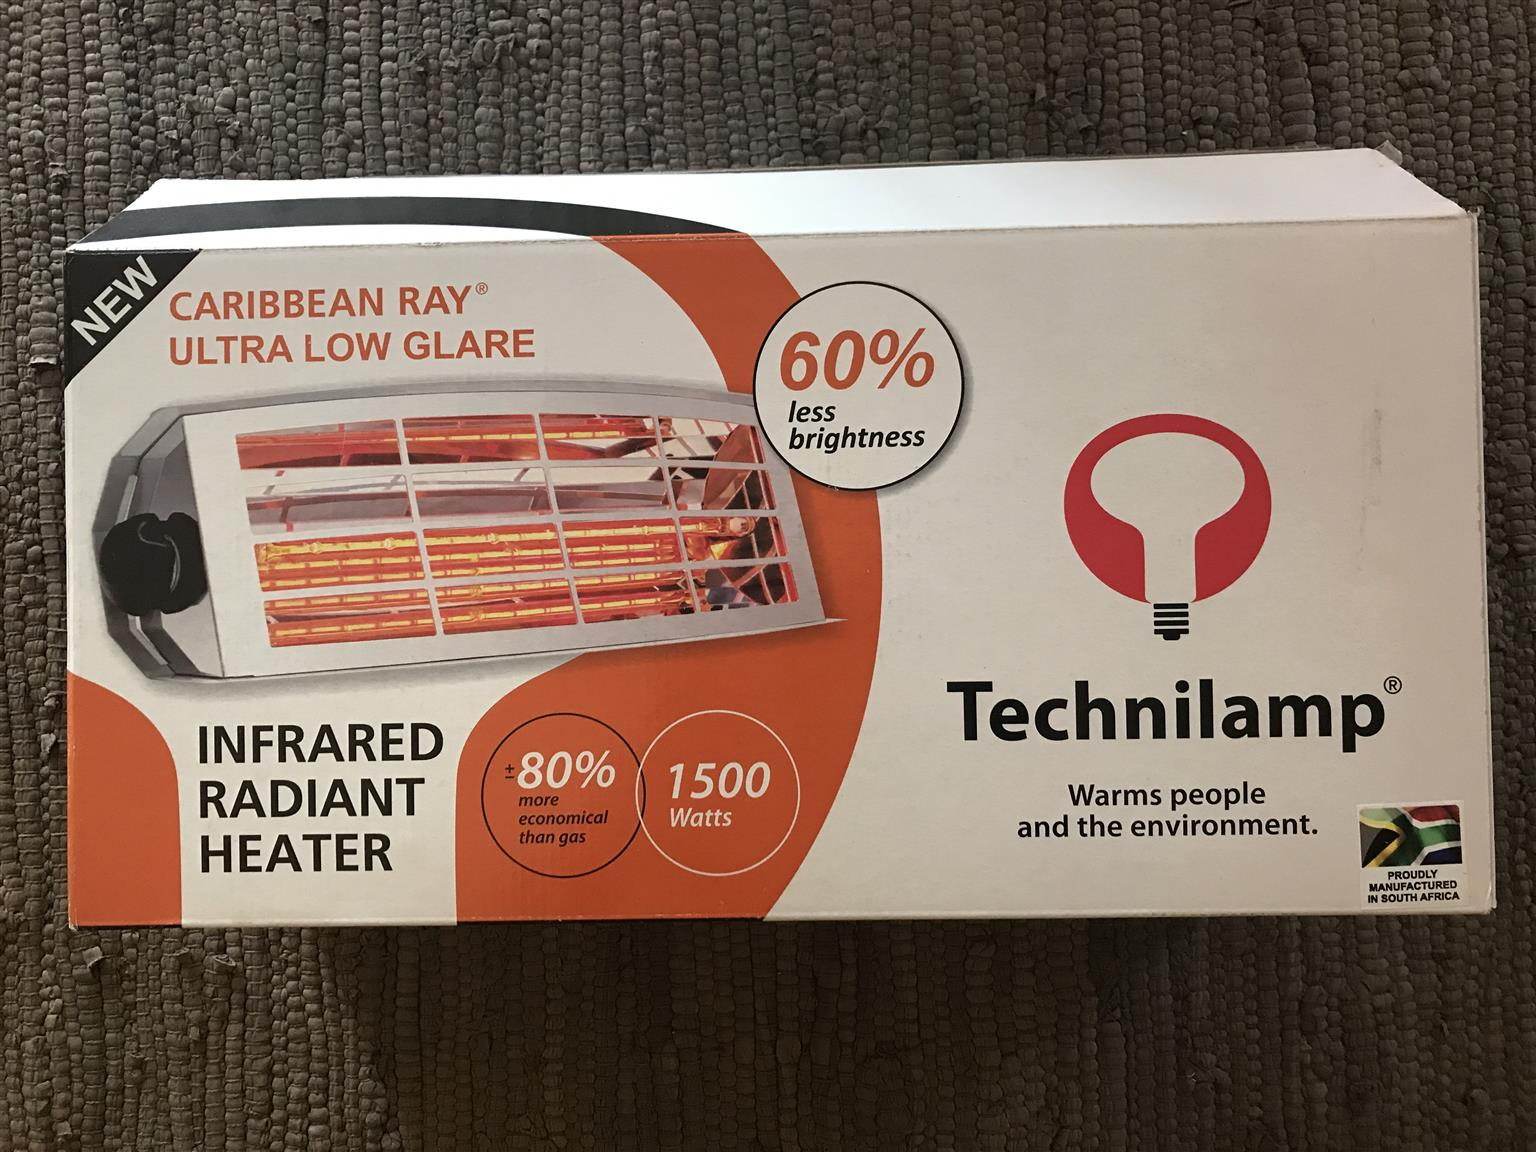 INFRARED ULTRA LOW GLARE CARIBBEAN RAY HEATER (1500W)